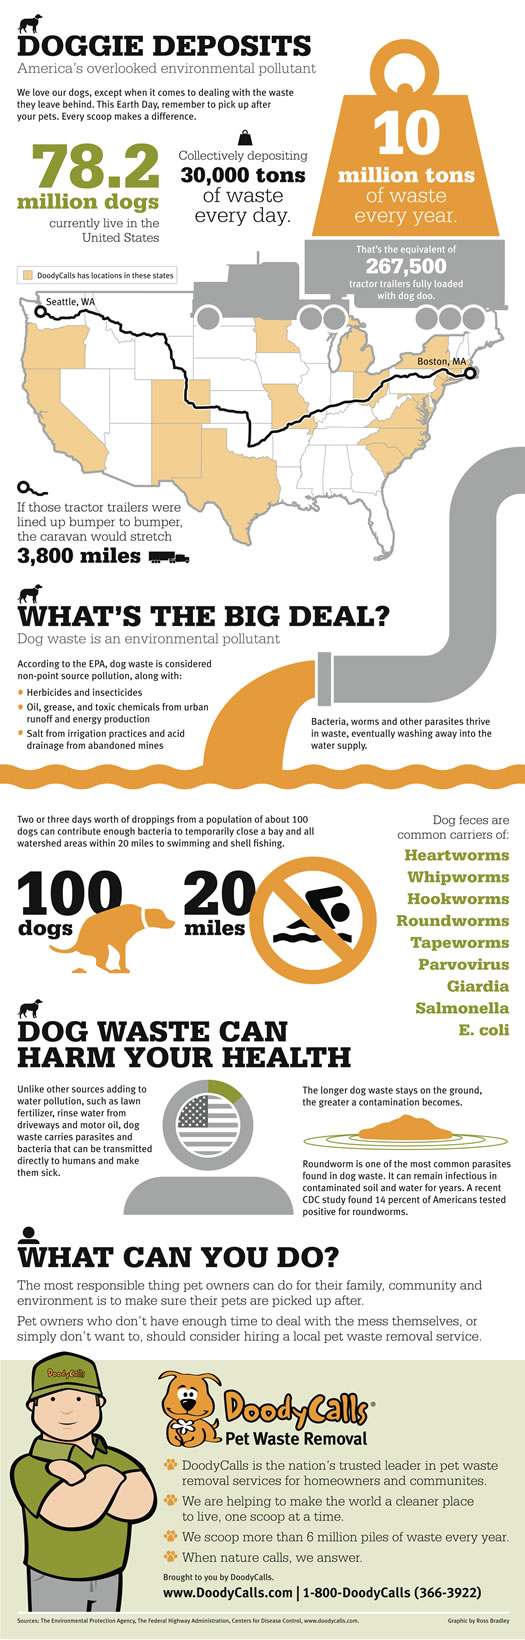 Doody_Calls_Earth_Day_Infographic_525